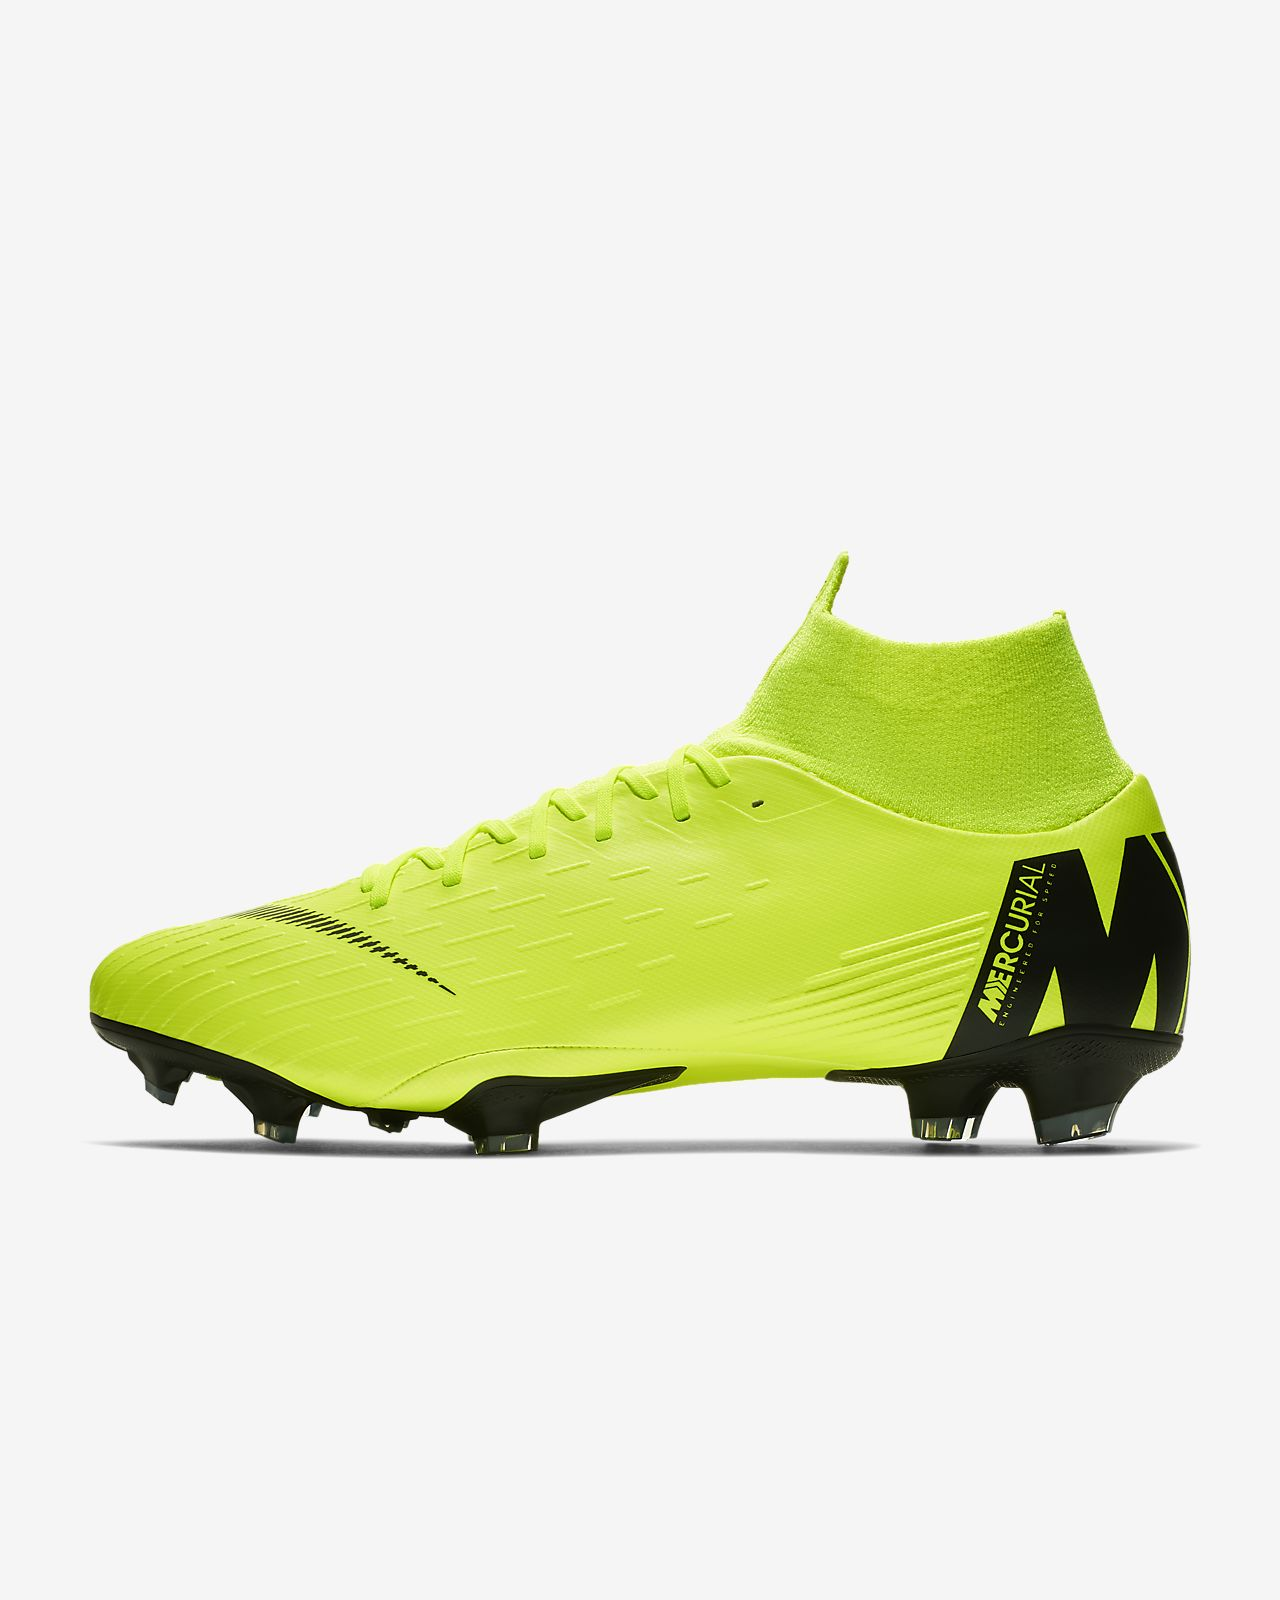 new products 75f6b ecc62 ... Nike Superfly 6 Pro FG Firm-Ground Football Boot